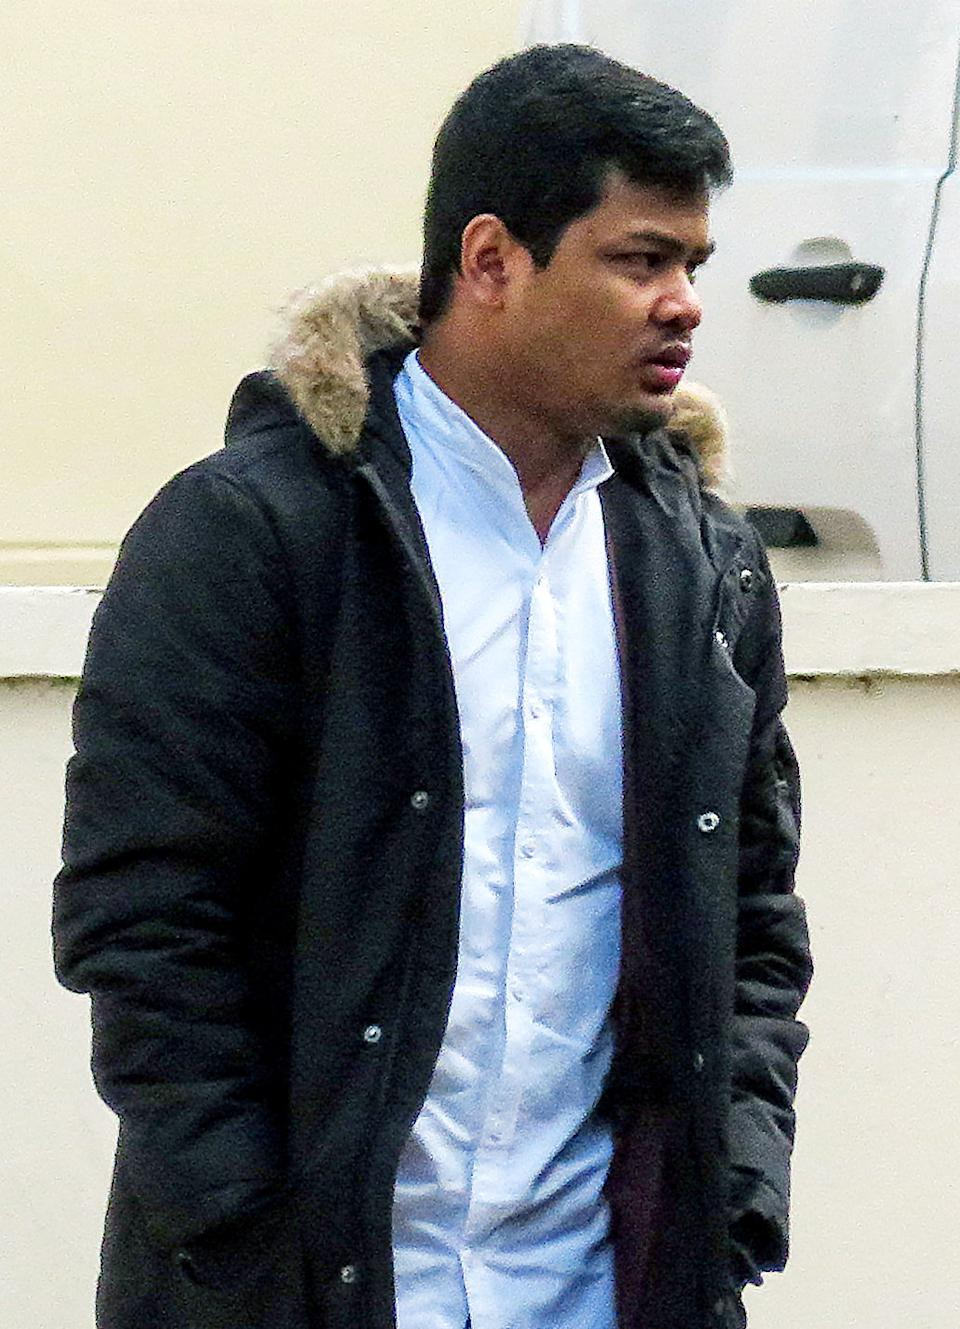 Vannak Rowe forced himself on his victim after she repeatedly refused to have sex with him at her home (swns)